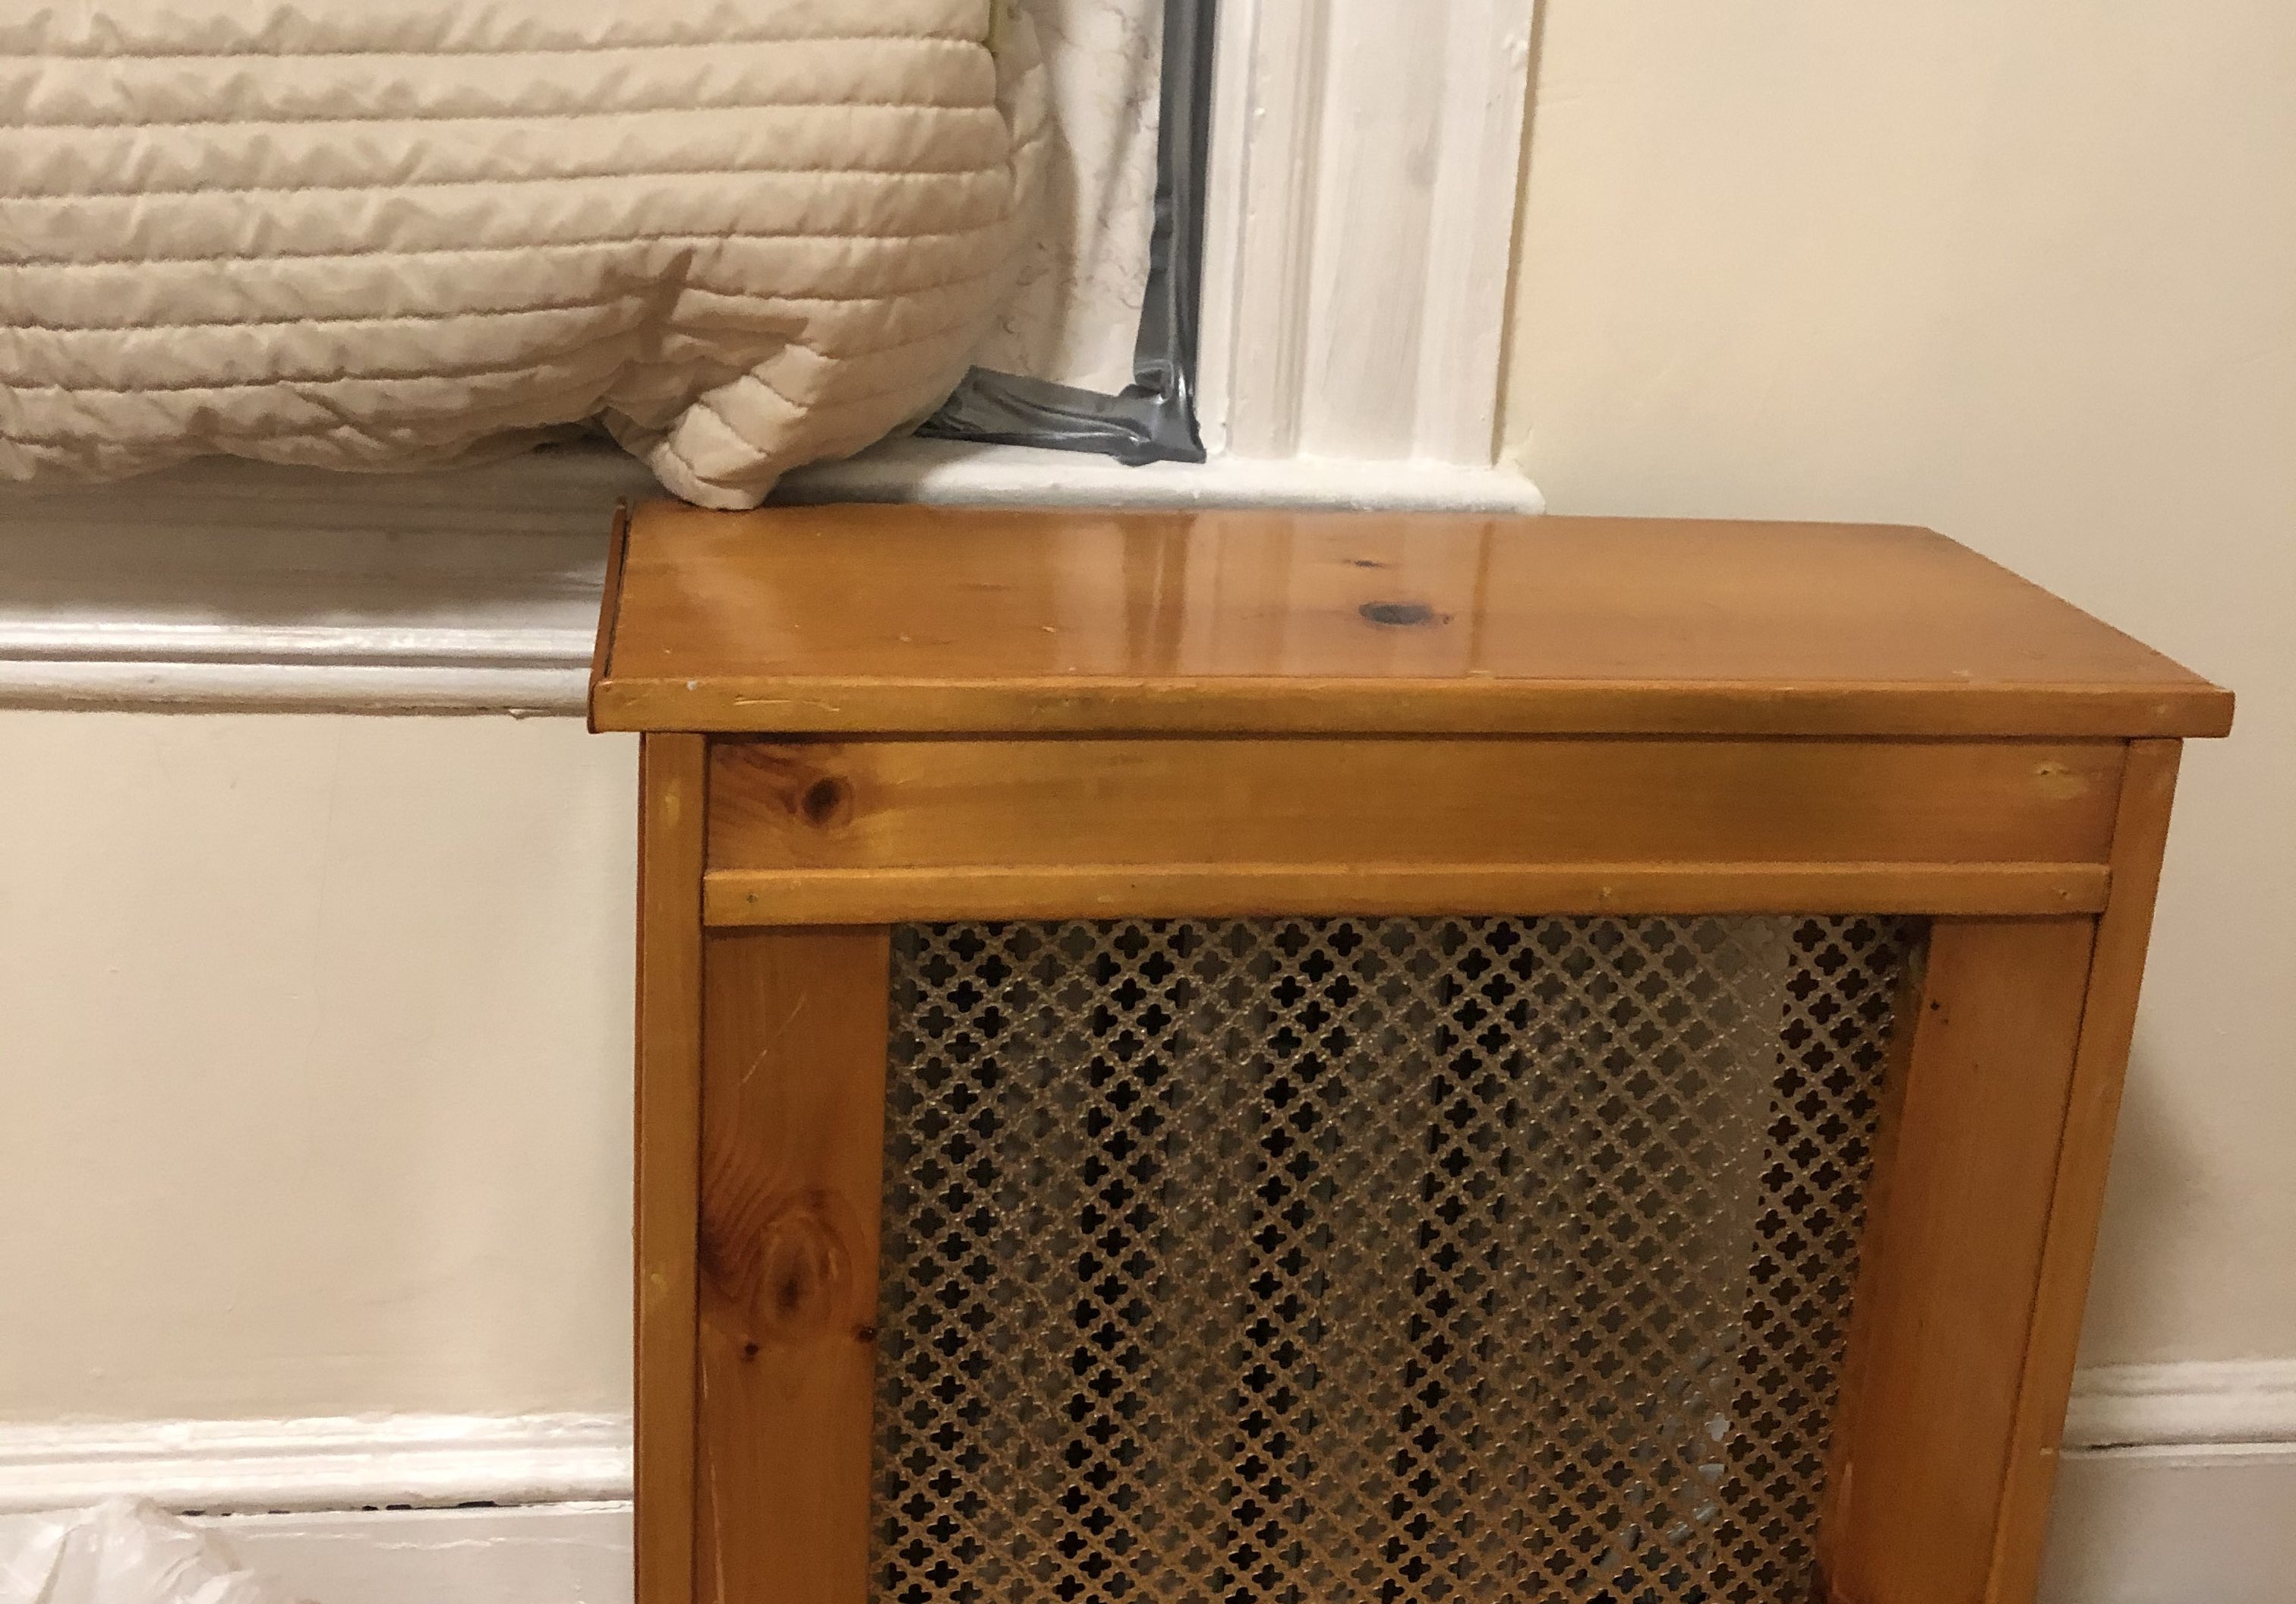 A wooden radiator box in front of a window blocked by blankets in the author's home. Photo courtesy of the author.